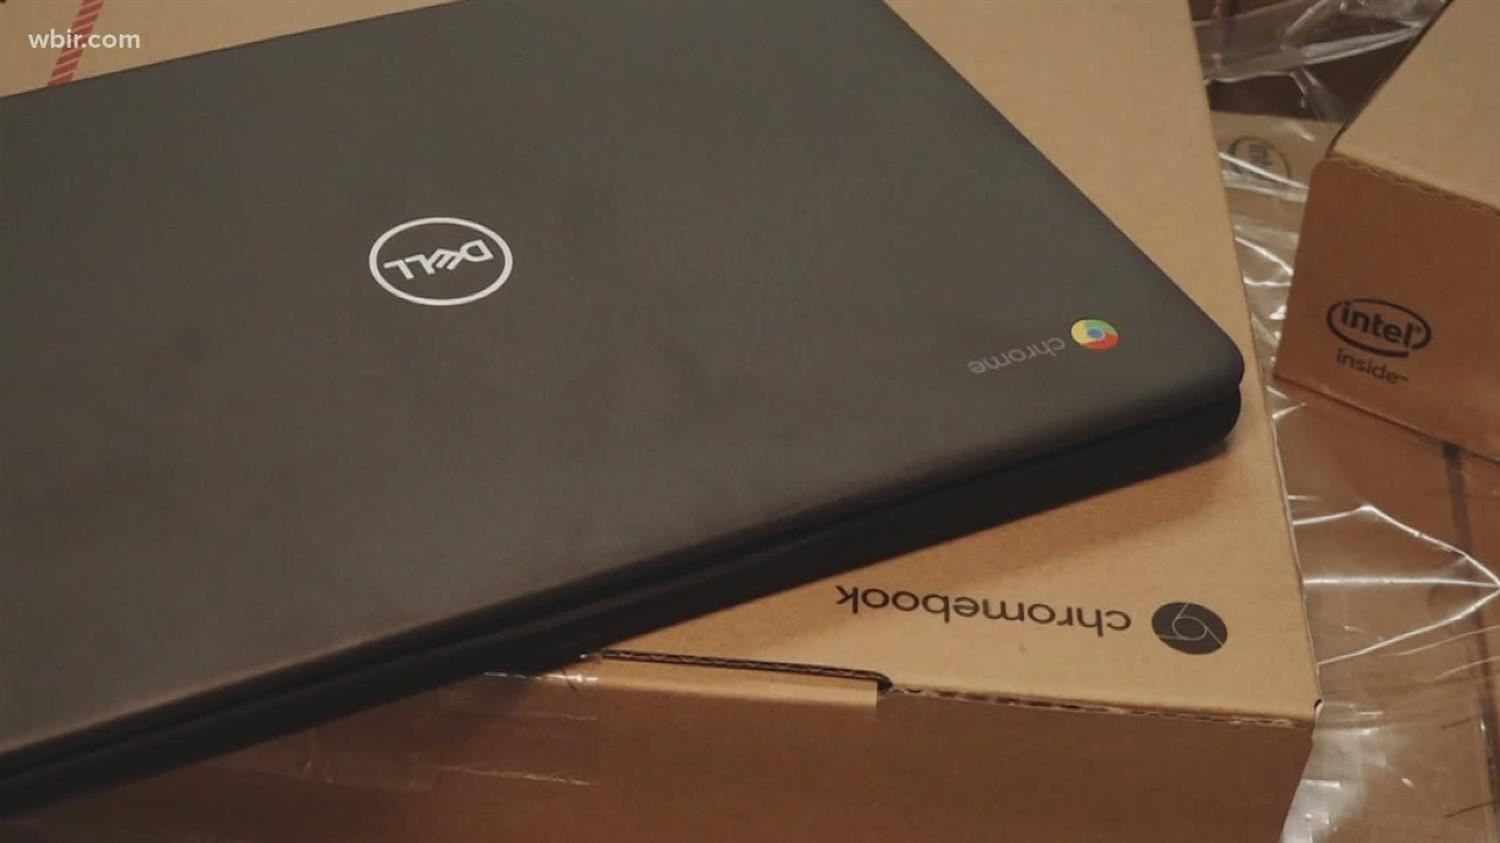 Chromebook Deployment for In-School Students